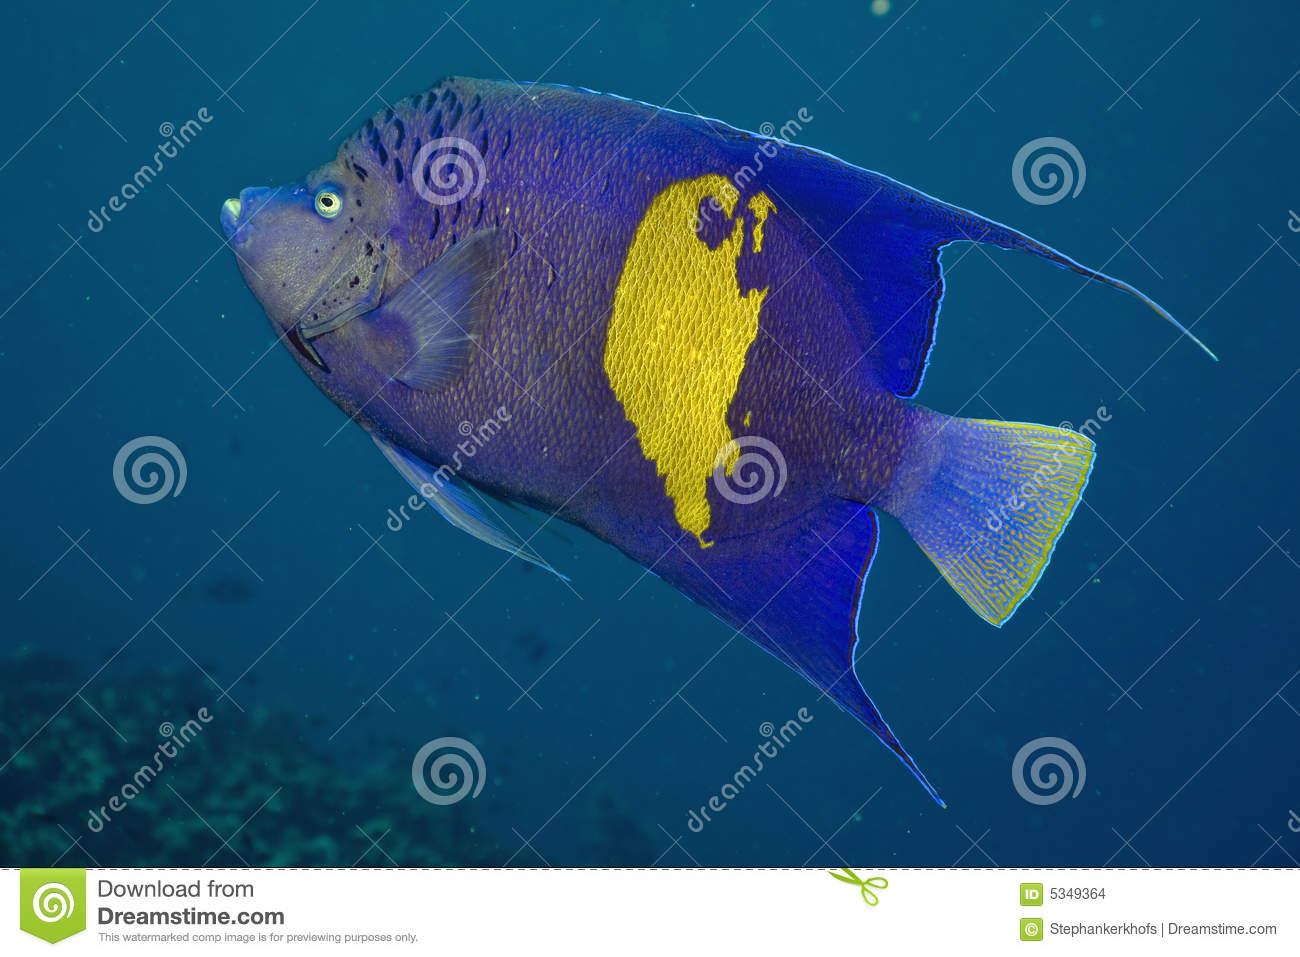 Red Sea Angelfish (Pomacanthus maculosus)